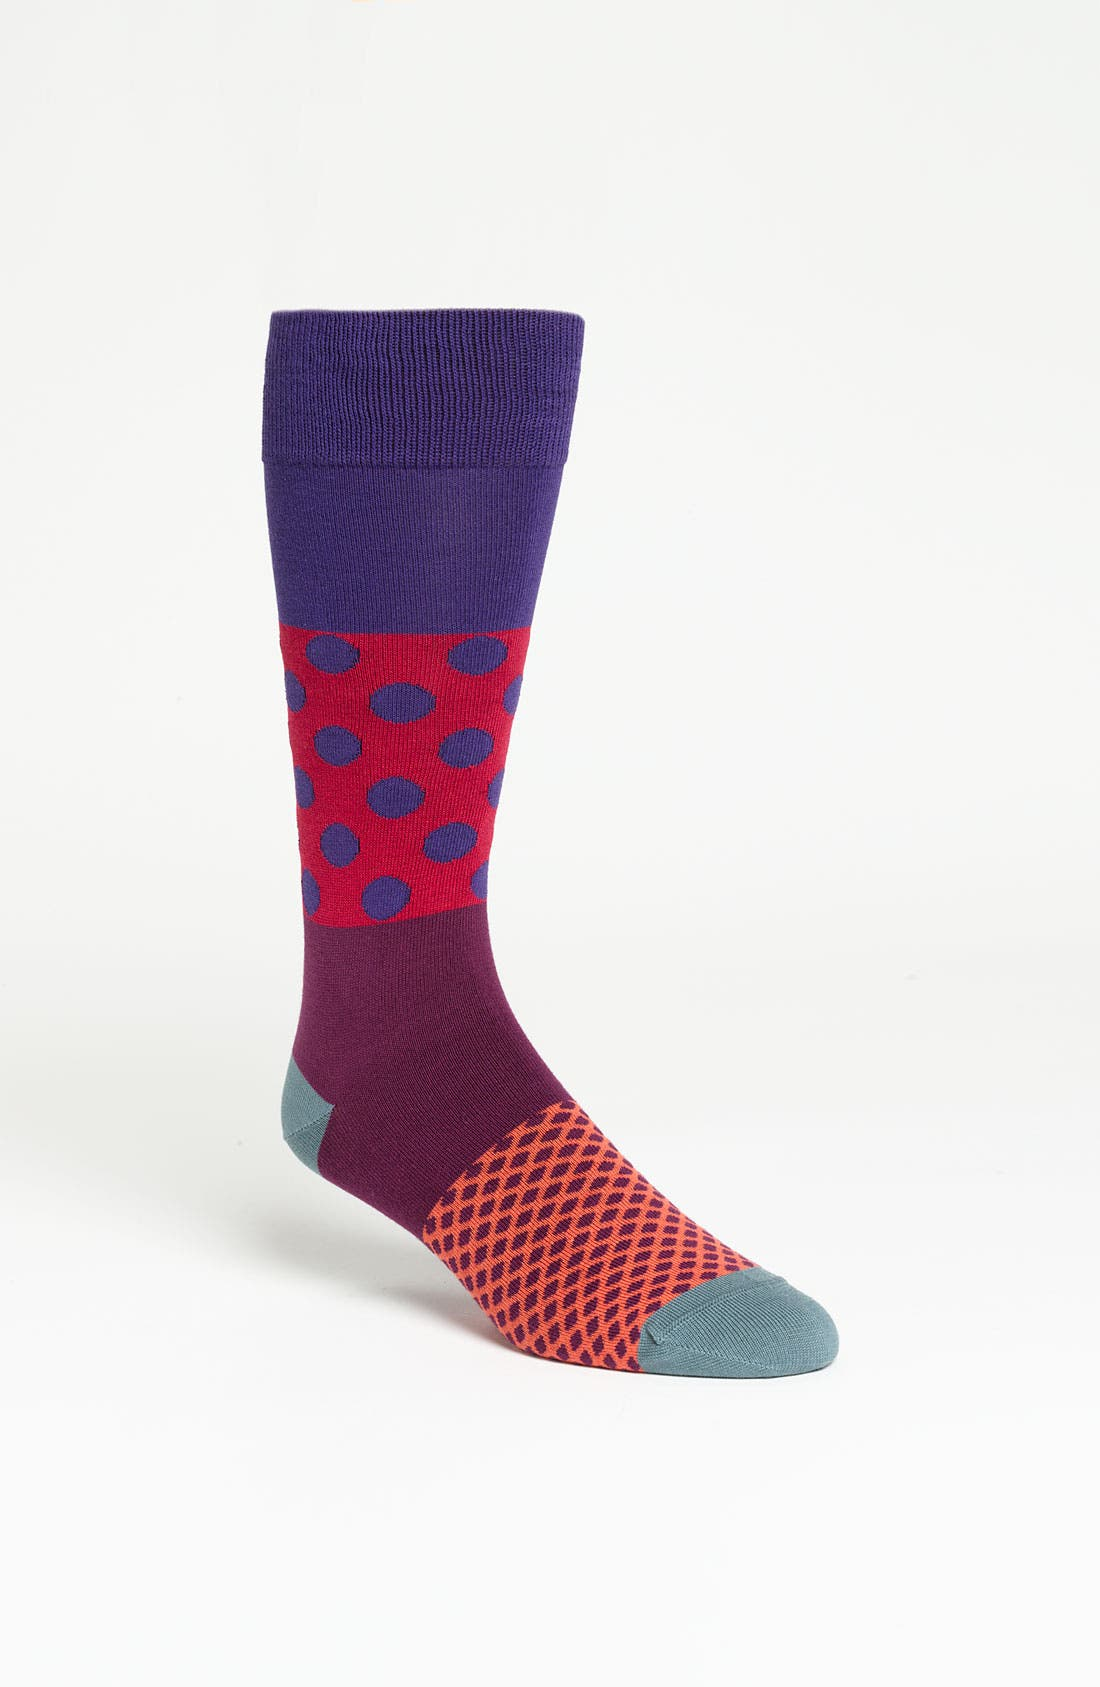 Alternate Image 1 Selected - Paul Smith Accessories Patterned Socks